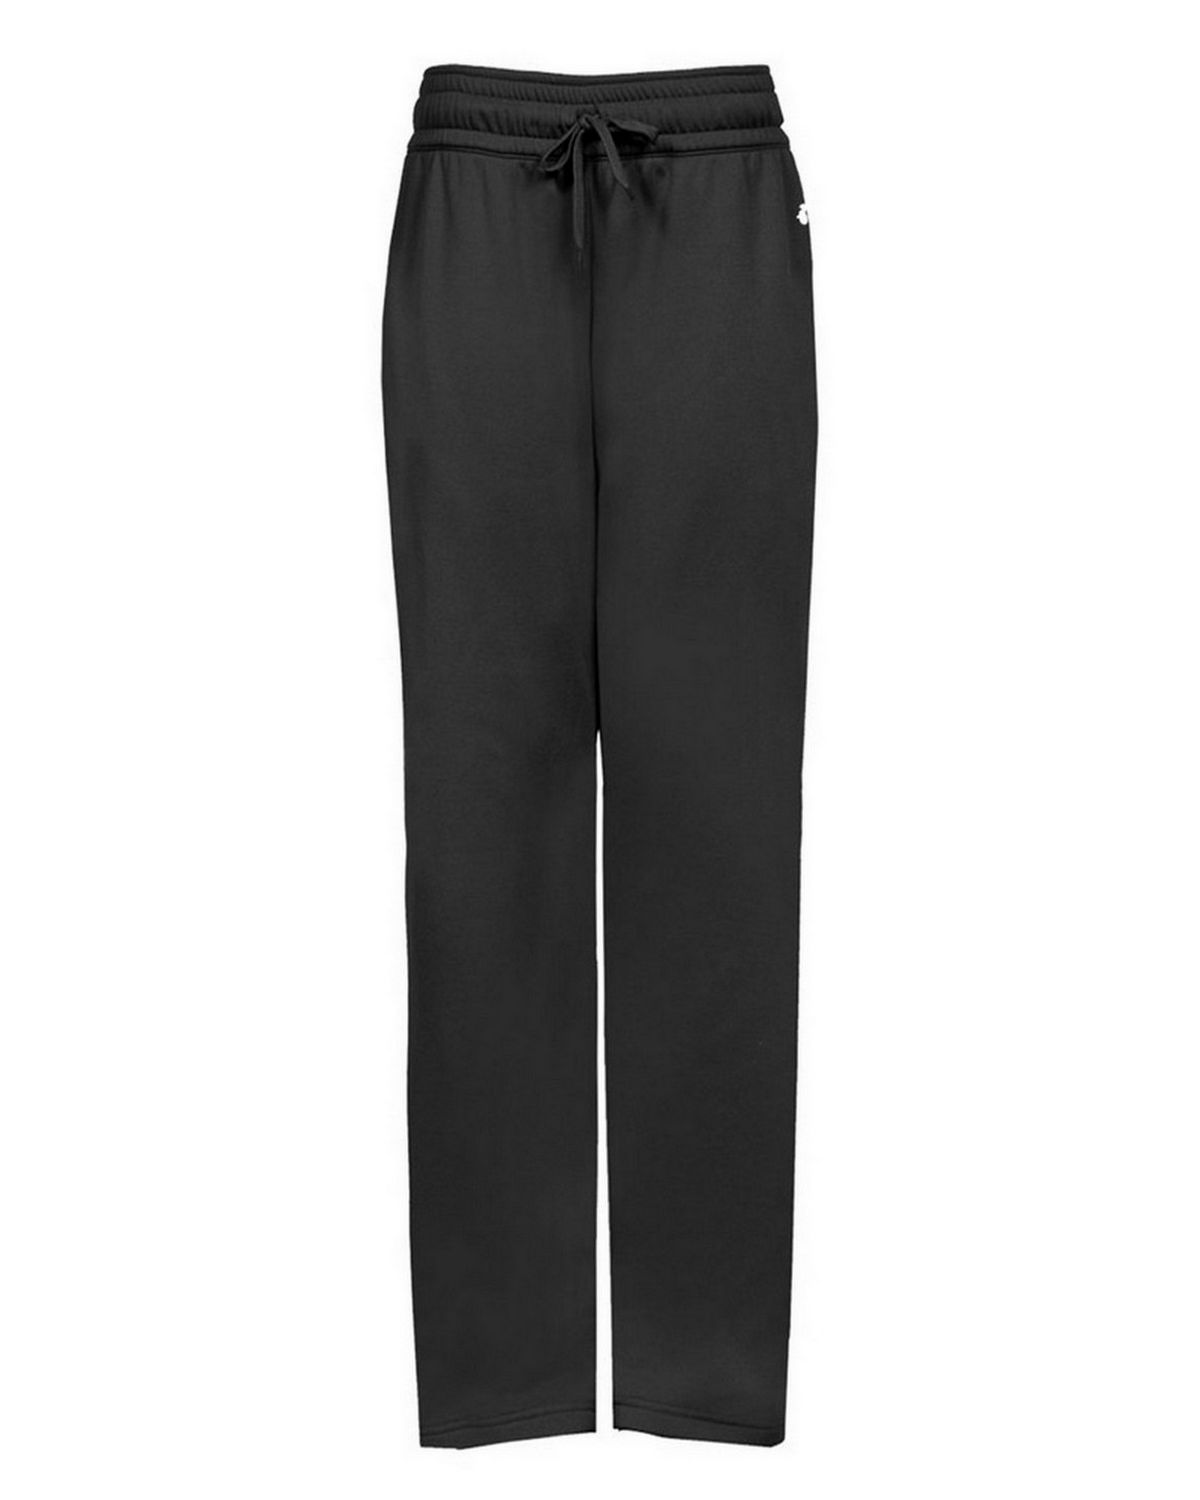 Badger 1470 BD Ladies Performance Fleece Pant - Black - L 1470